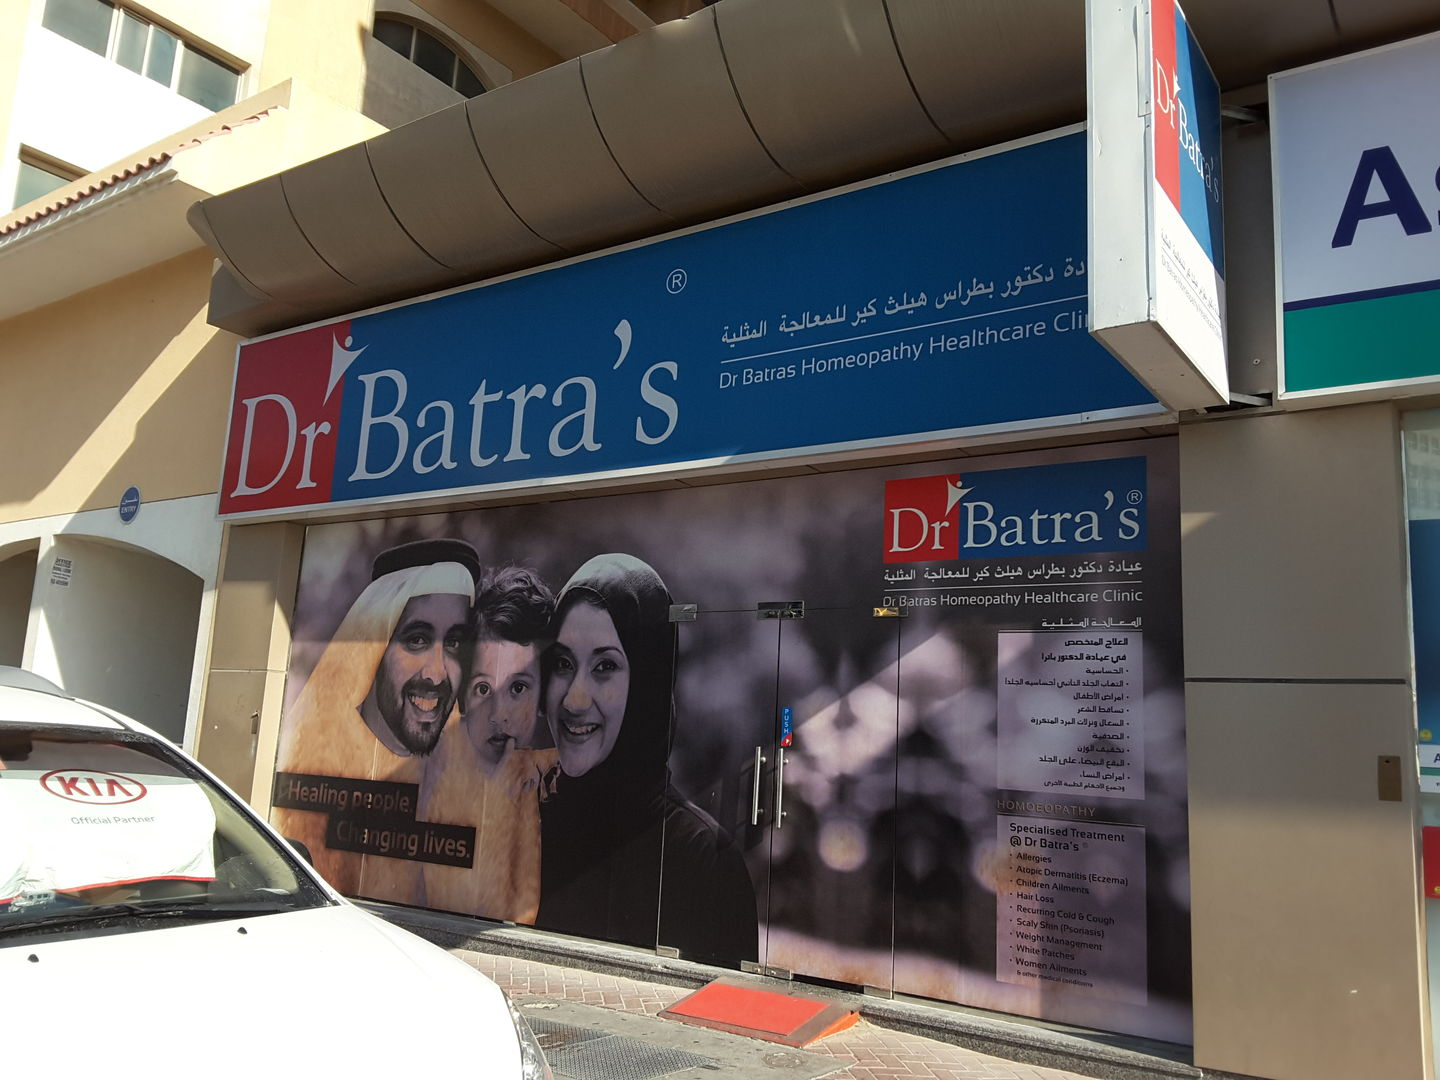 HiDubai-business-dr-batras-homeopathy-healthcare-clinic-beauty-wellness-health-homeopathy-alternative-medicine-al-nahda-1-dubai-2